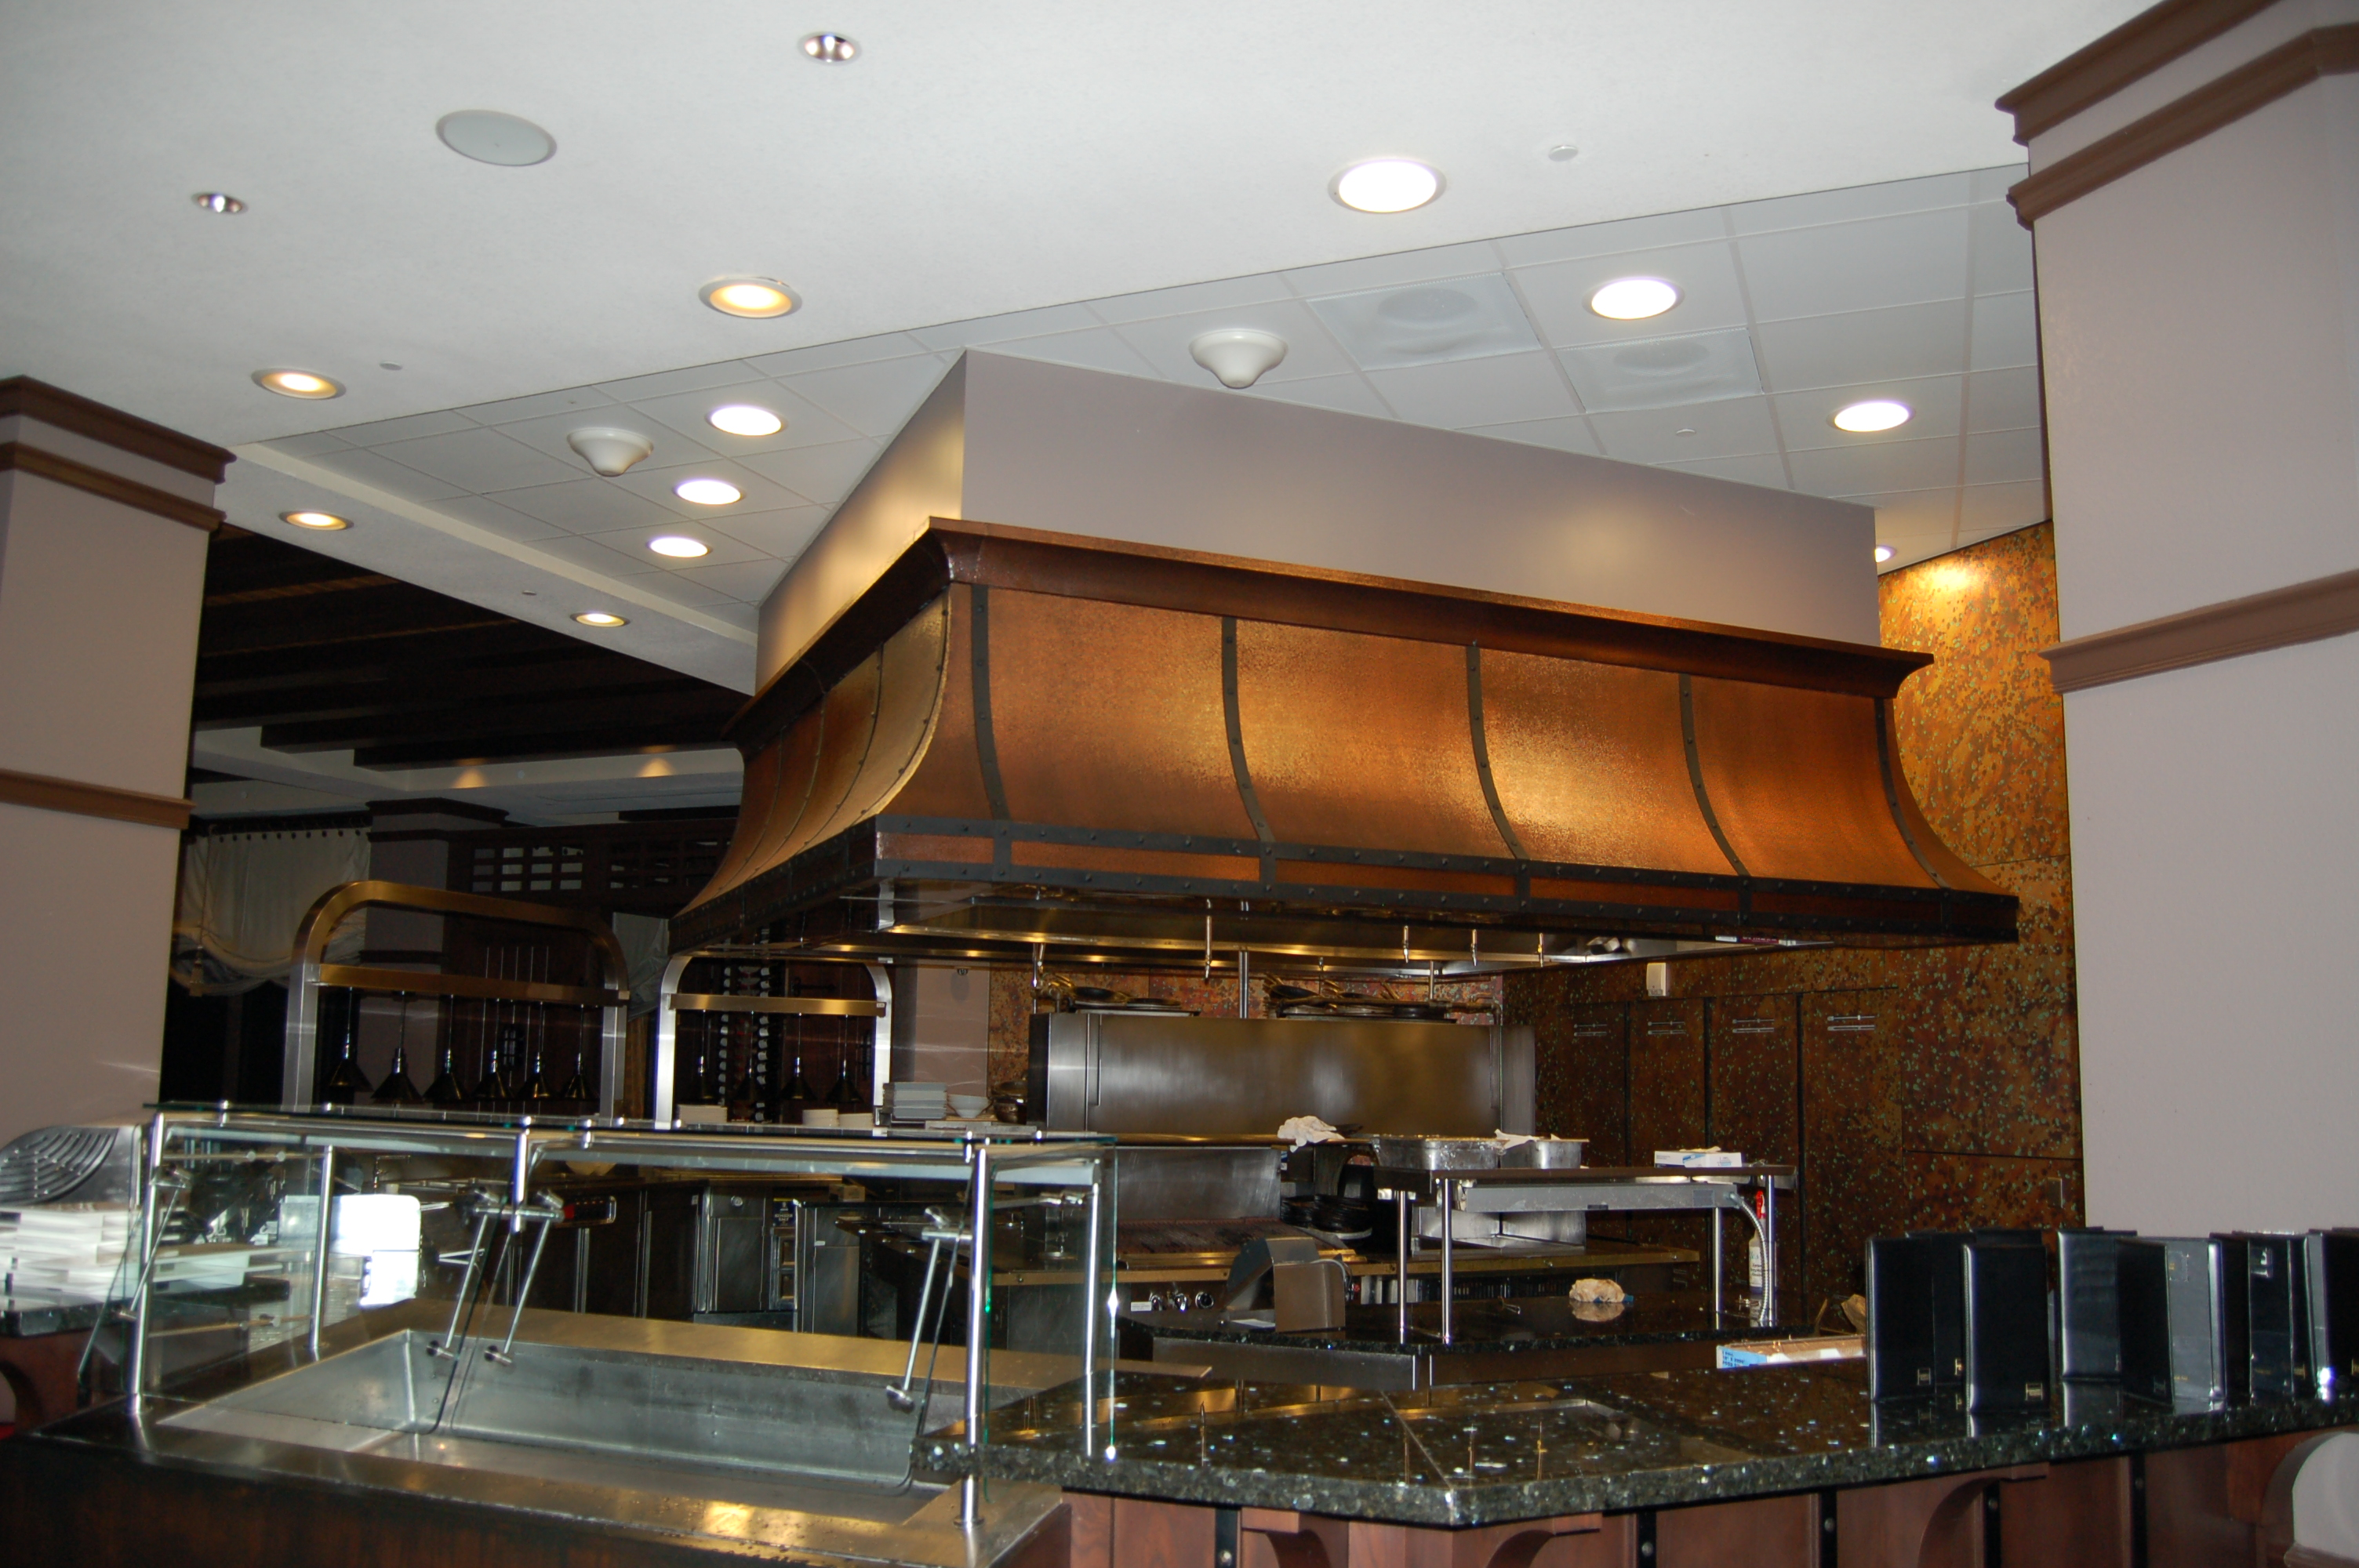 commercial personalize how countertops kitchens to texture plate for stainless background steel